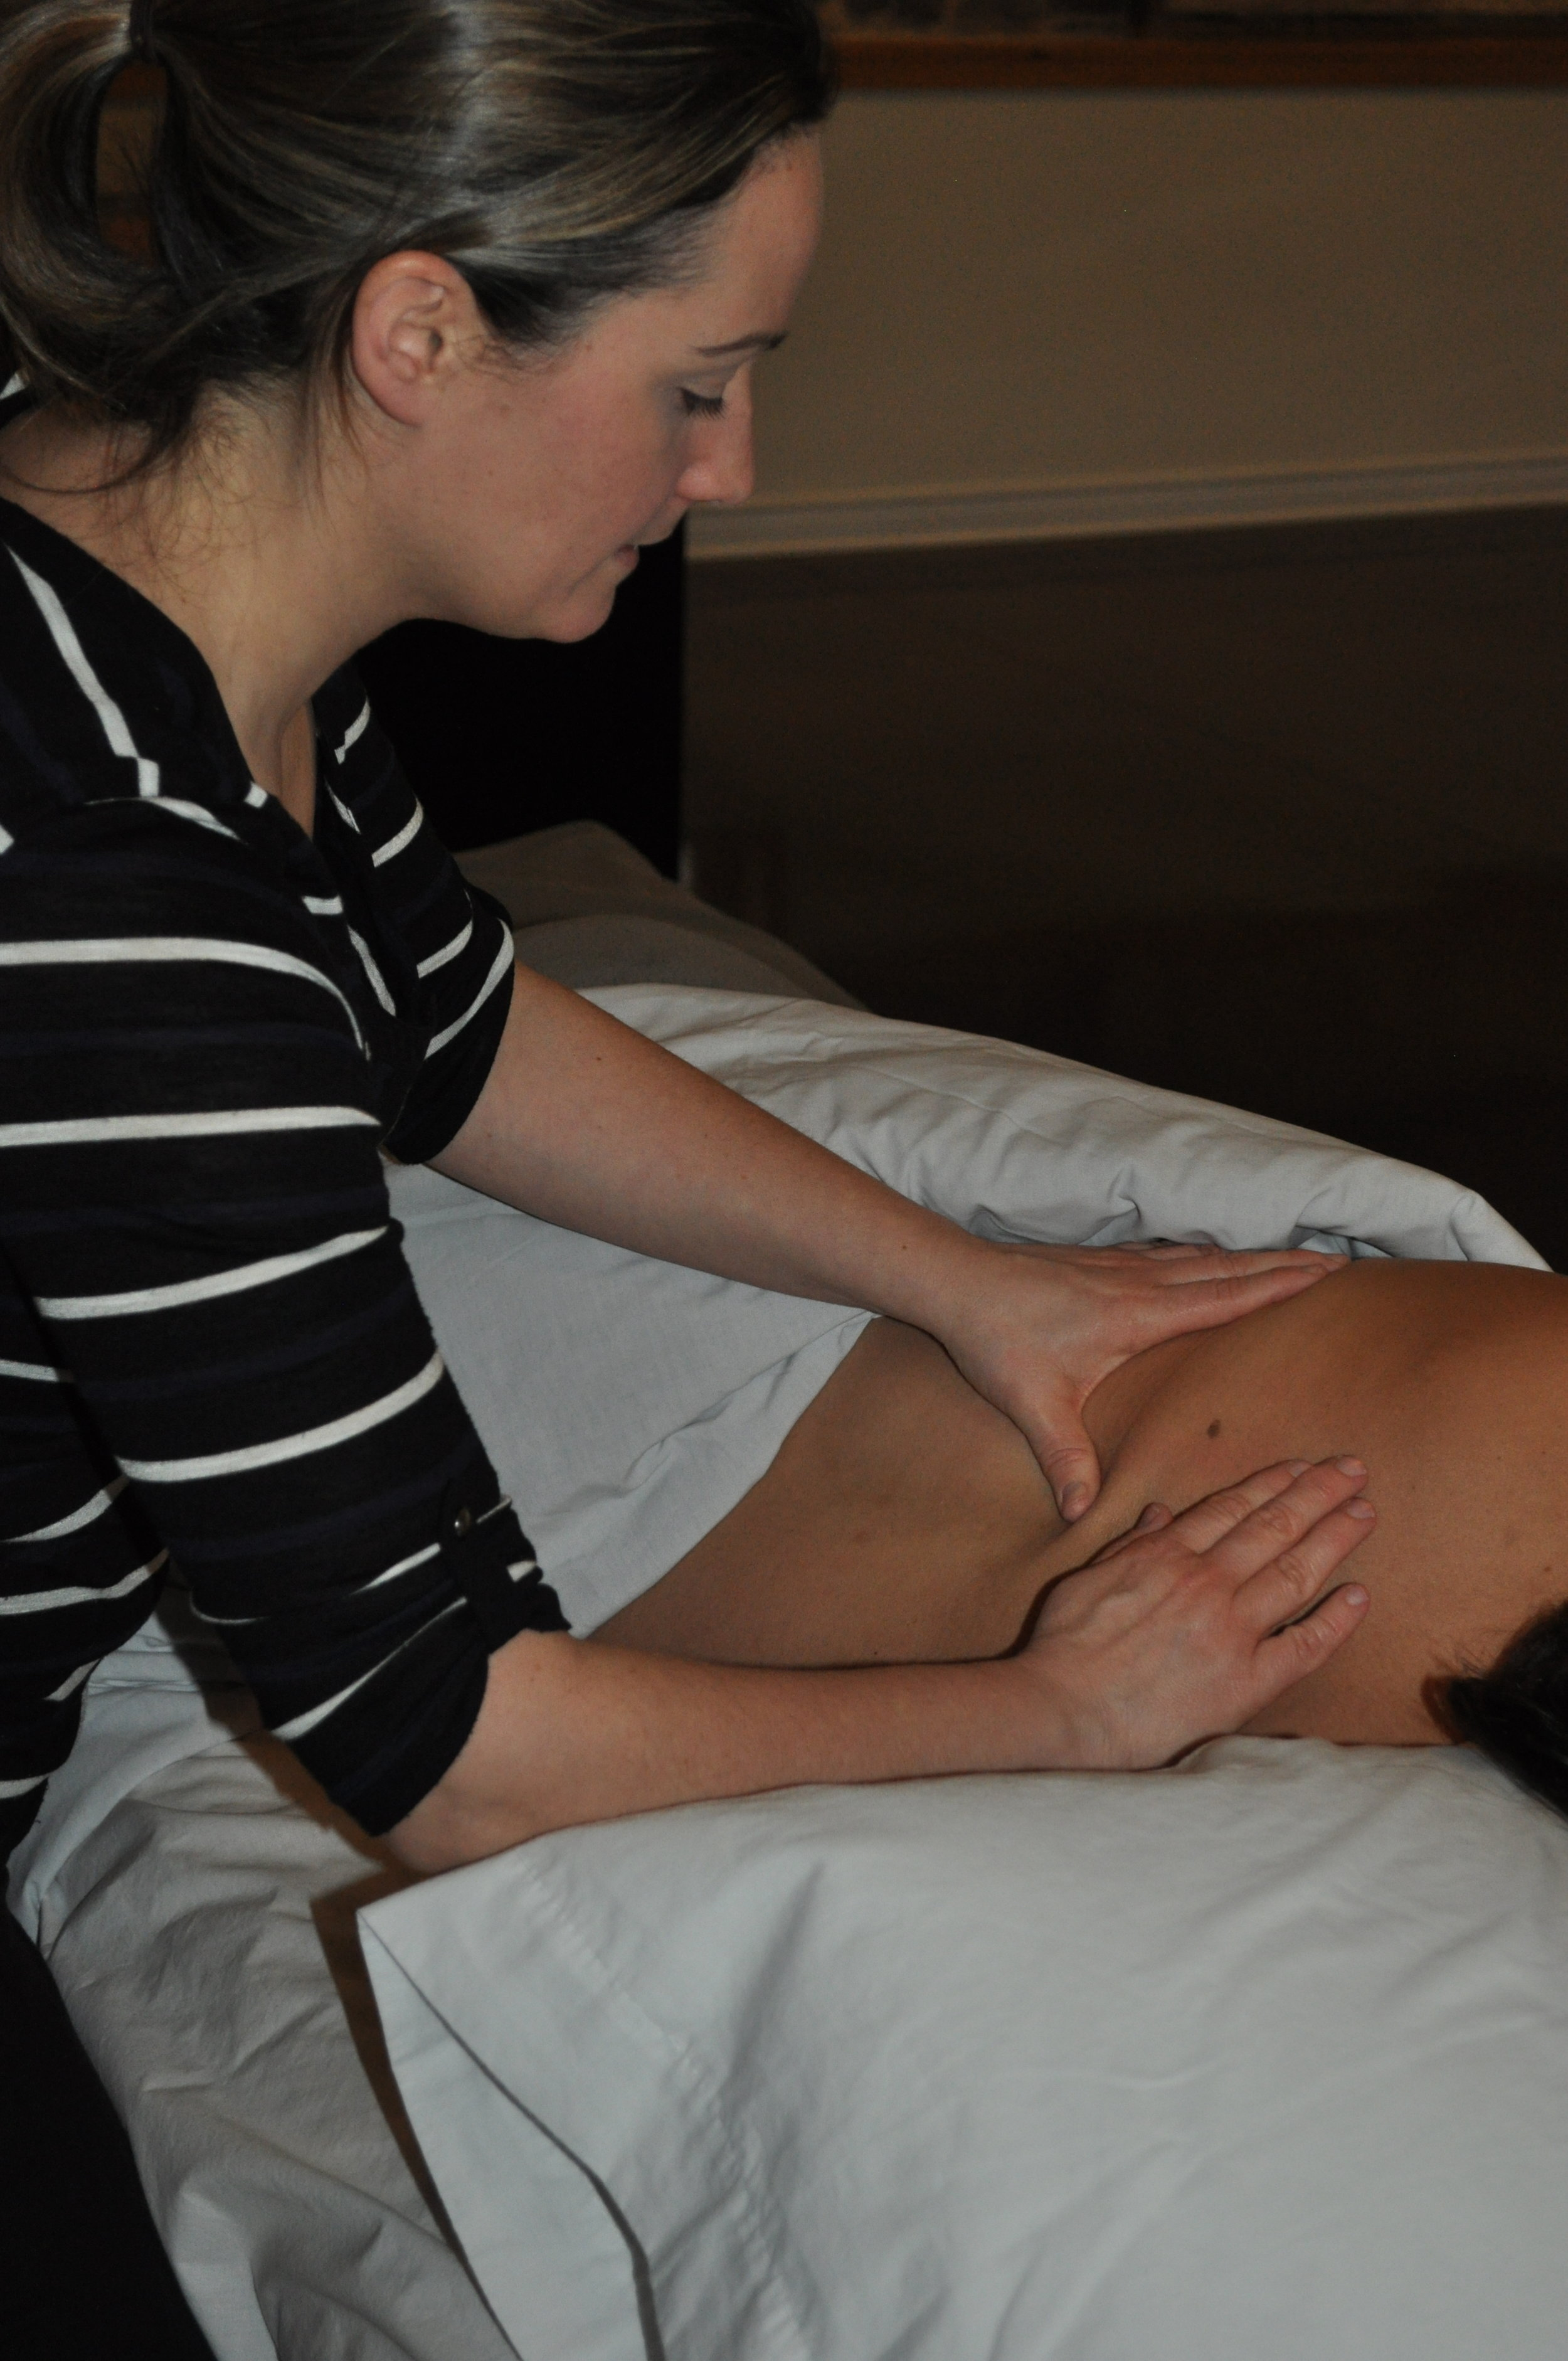 Massage Therapy withMonica Proscia, BA, RMTMondays 1:00- 6:15pm - Monica graduated in 2005 from the Massage Therapy program at Sutherland-Chan School and Teaching Clinic in Toronto, Ontario. She began her career as a Massage Therapist in the GTA and relocated to Ottawa in 2008 and moved to the Merrickville area in 2014.Monica has experience treating clients for a variety of ailments, including but not limited to, stress management and repetitive strain and sports injuries utilizing a variety of pain management and relaxation treatments. She has taken specialized training in deep tissue massage, structural myofascial release therapy, K-taping and active isolated stretching.Benefits of Massage Therapy: Promote physical relaxation; improves circulation, nourishing cells and improving elimination of waste; relieves physical dysfunction and pain; reduces nerve compression (sciatica, carpal tunnel, thoracic outlet syndrome); improves flexibility and range of motion; addresses postural concernsIf you would like to book in with Monica, please contact her directly, monicaproscia.rmt@gmail.com or 613-285-5552.